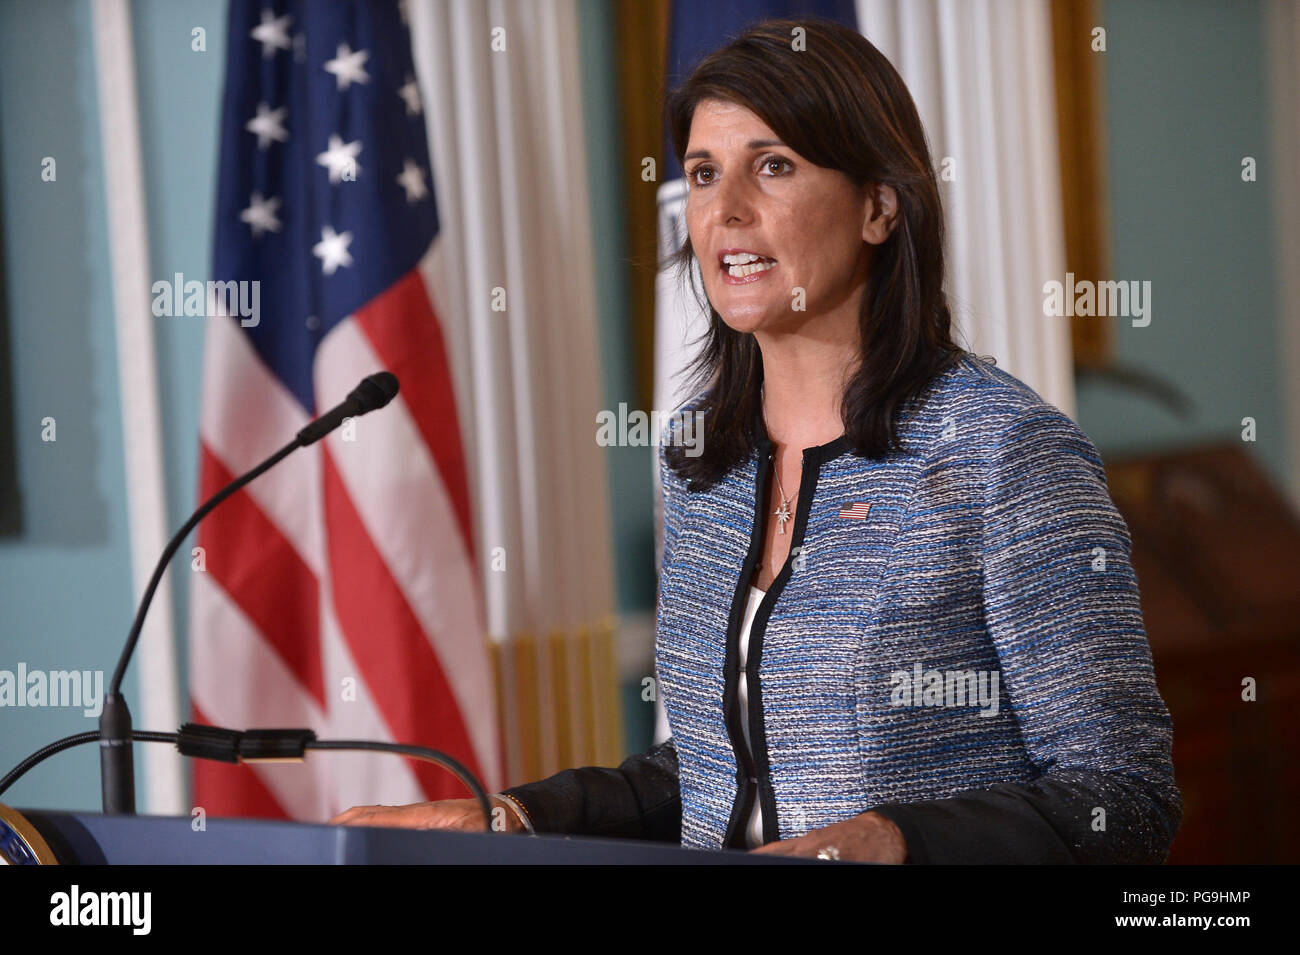 U.S. Secretary of State Mike Pompeo and U.S. Permanent Representative to the United Nations Nikki Haley deliver remarks to the press on the UN Human Rights Council, at the U.S. Department of State in Washington, D.C., on June 19, 2018. - Stock Image